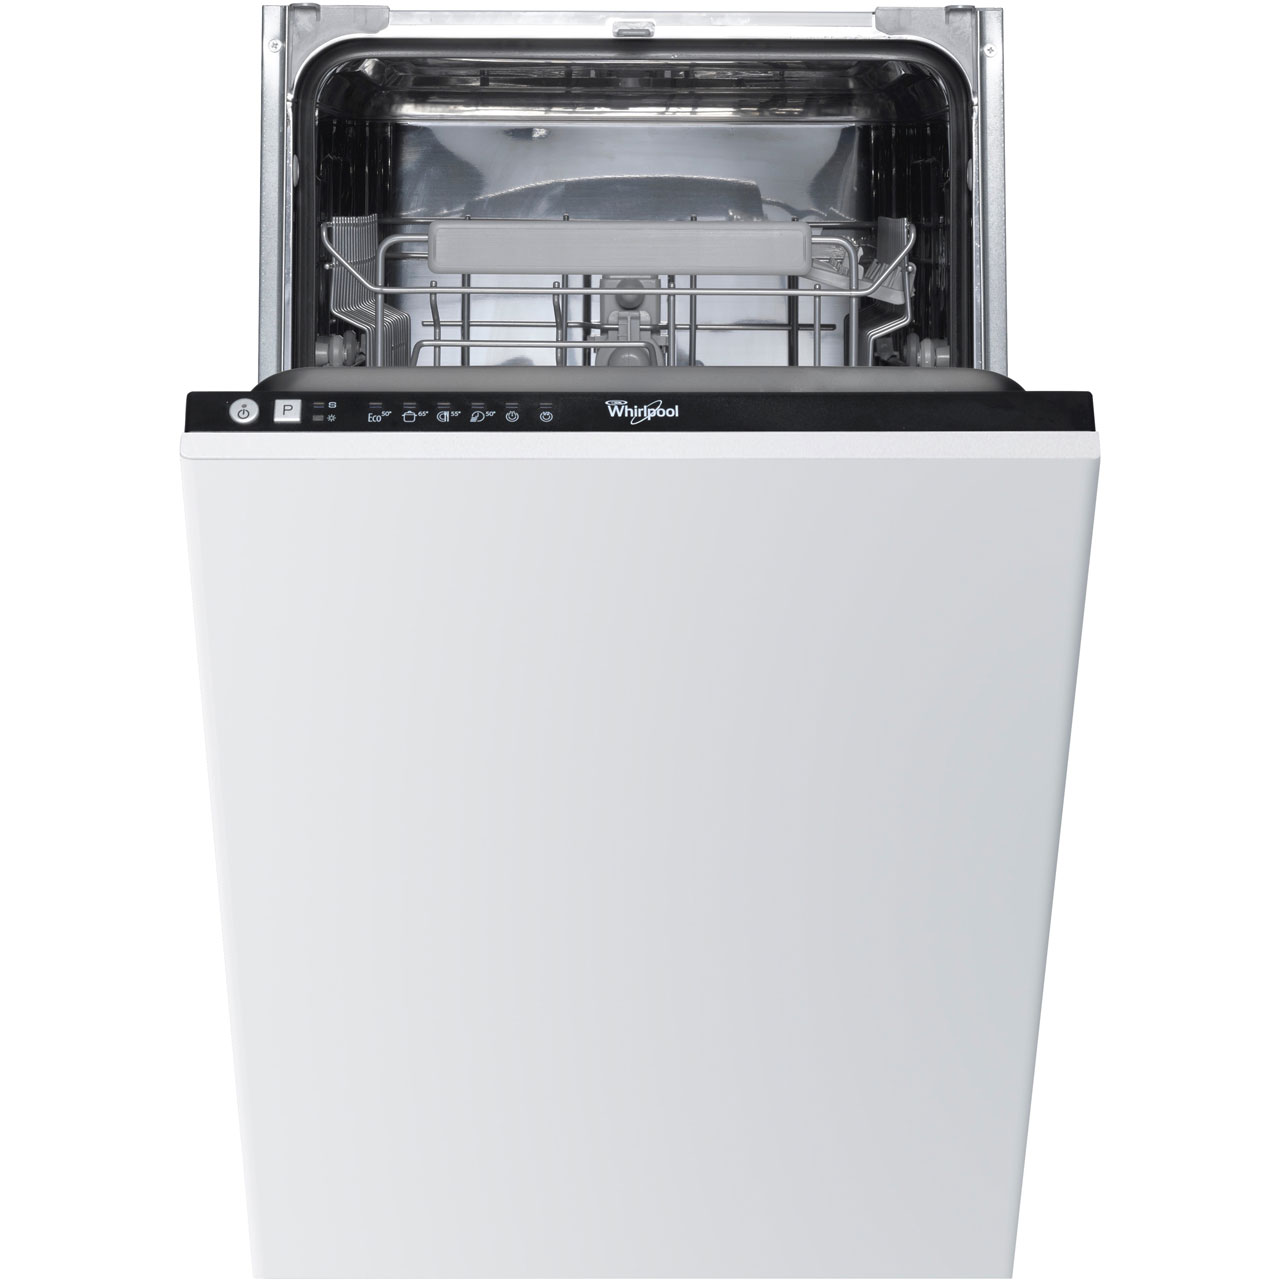 frigidaire wiring diagrams html with 100 Whirlpool Gold Dishwasher Repair Whirlpool Dishwasher R on Luxpro Thermostat Wiring Diagram Wiring Diagrams moreover Oven Repair 6 furthermore True Twt 48f Wiring Diagram together with Window Part Diagram as well Maytag Front Load Washer 3e Error Wire Harness.